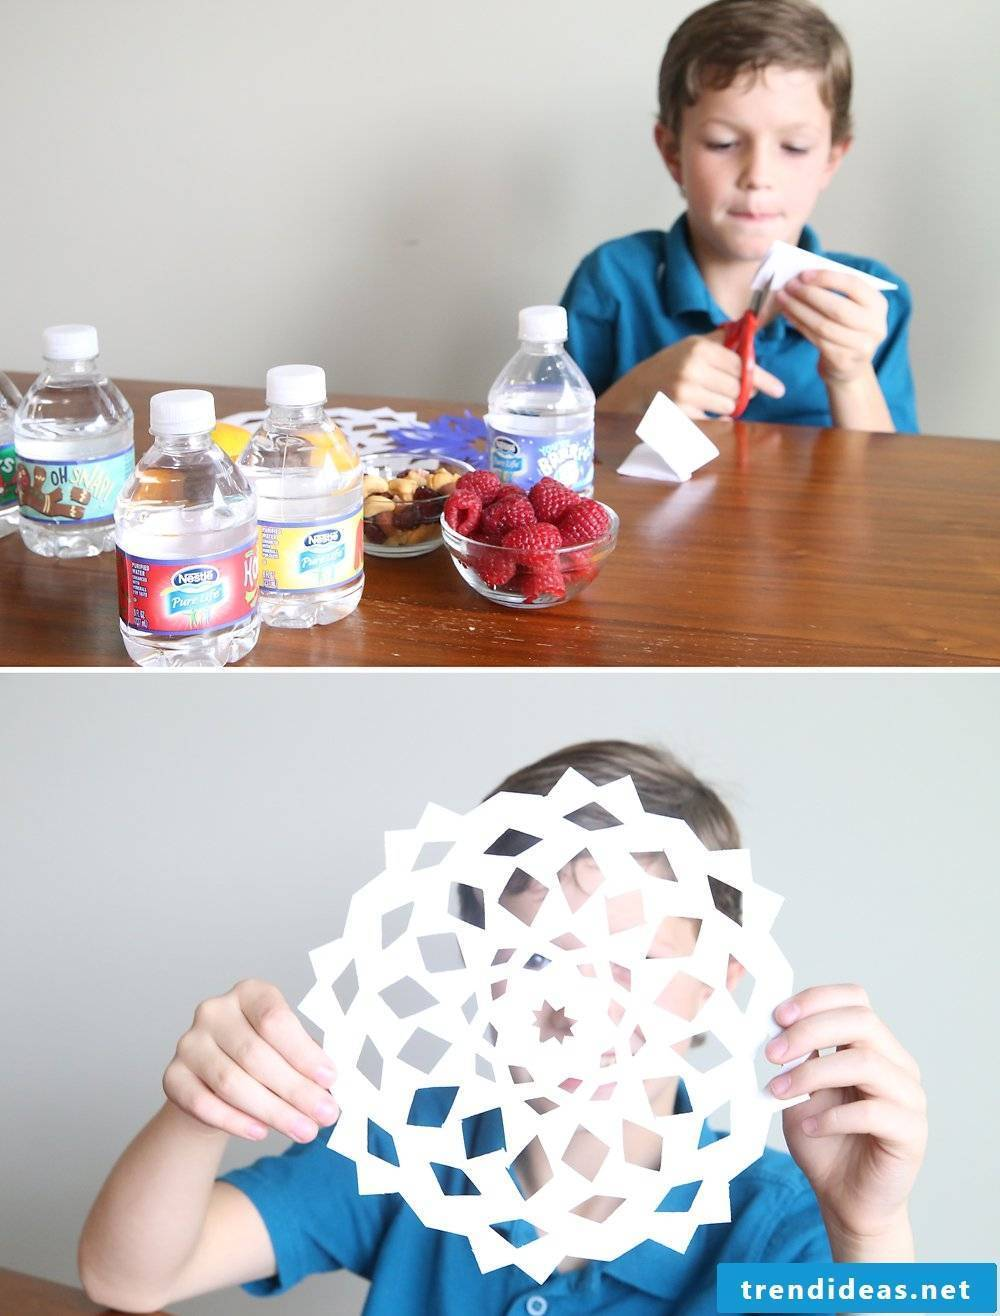 Christmas crafts with children - tinker snowflakes